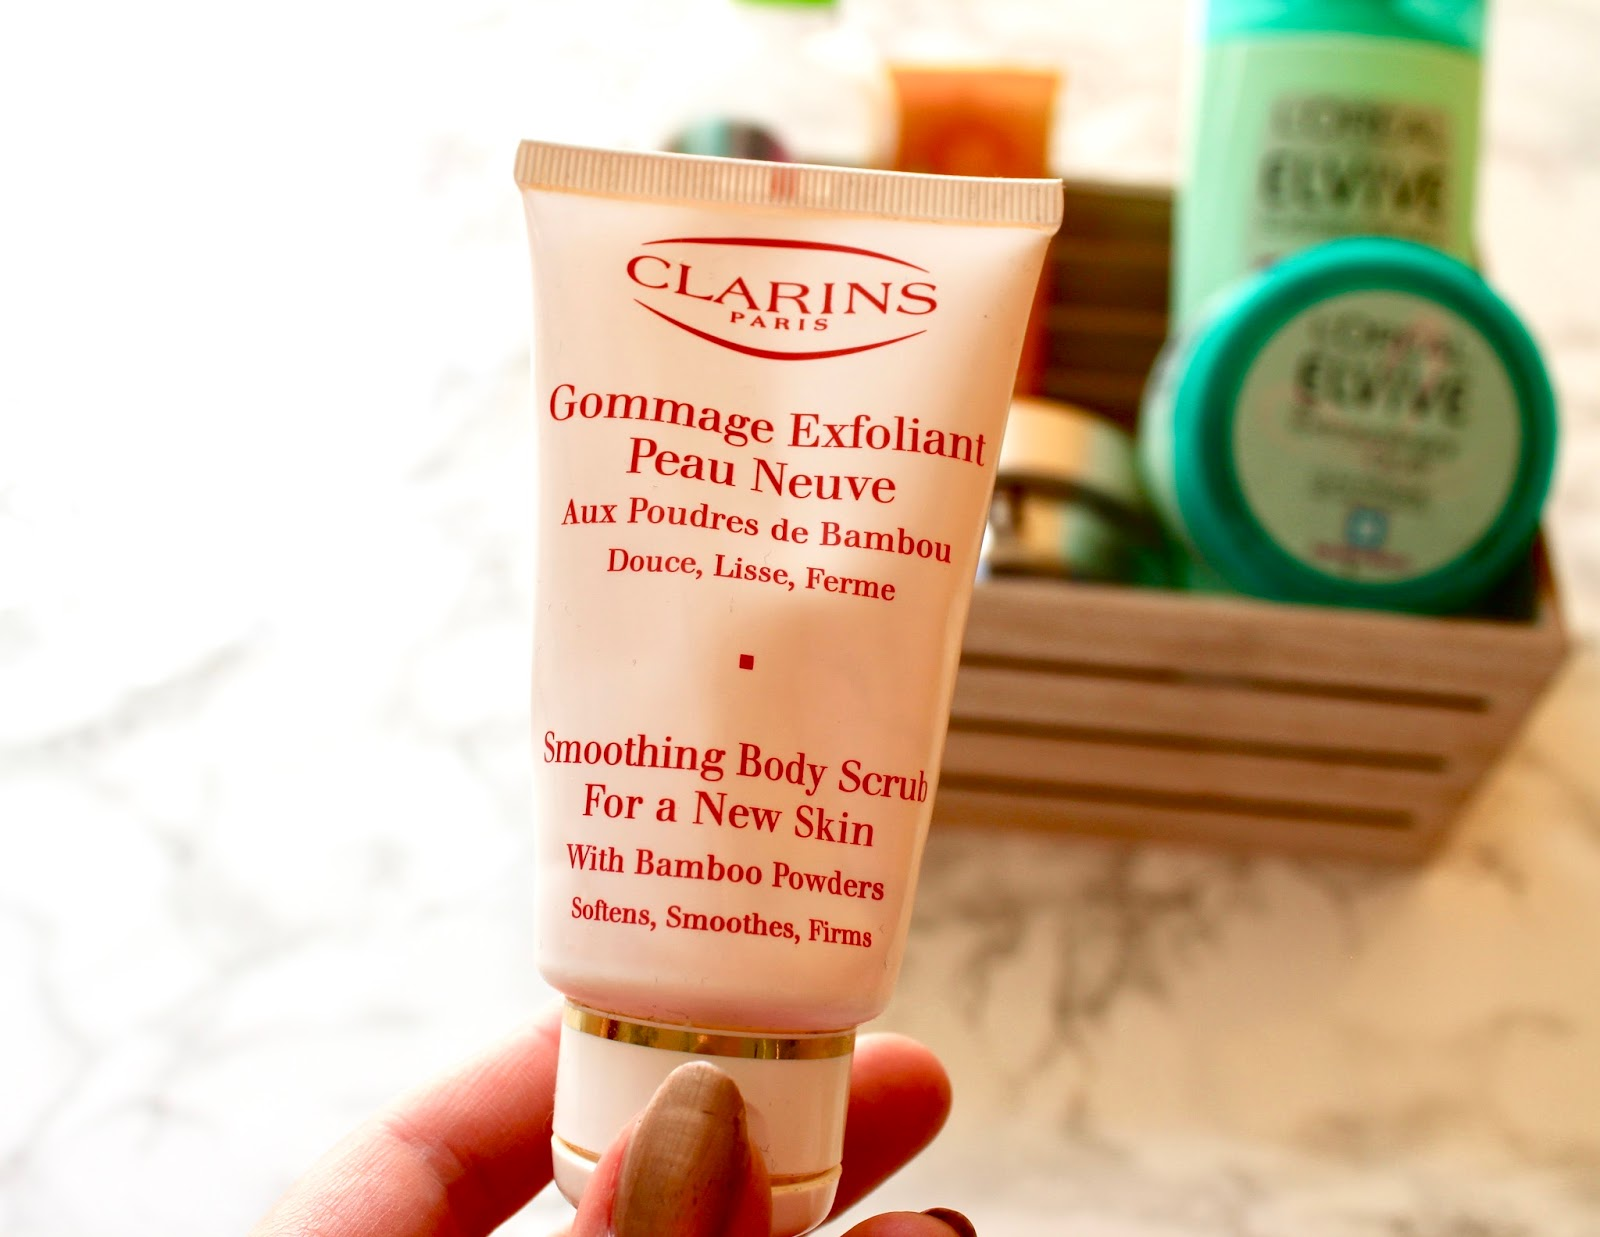 Empties Clarins Smoothing Body Scrub For a New Skin